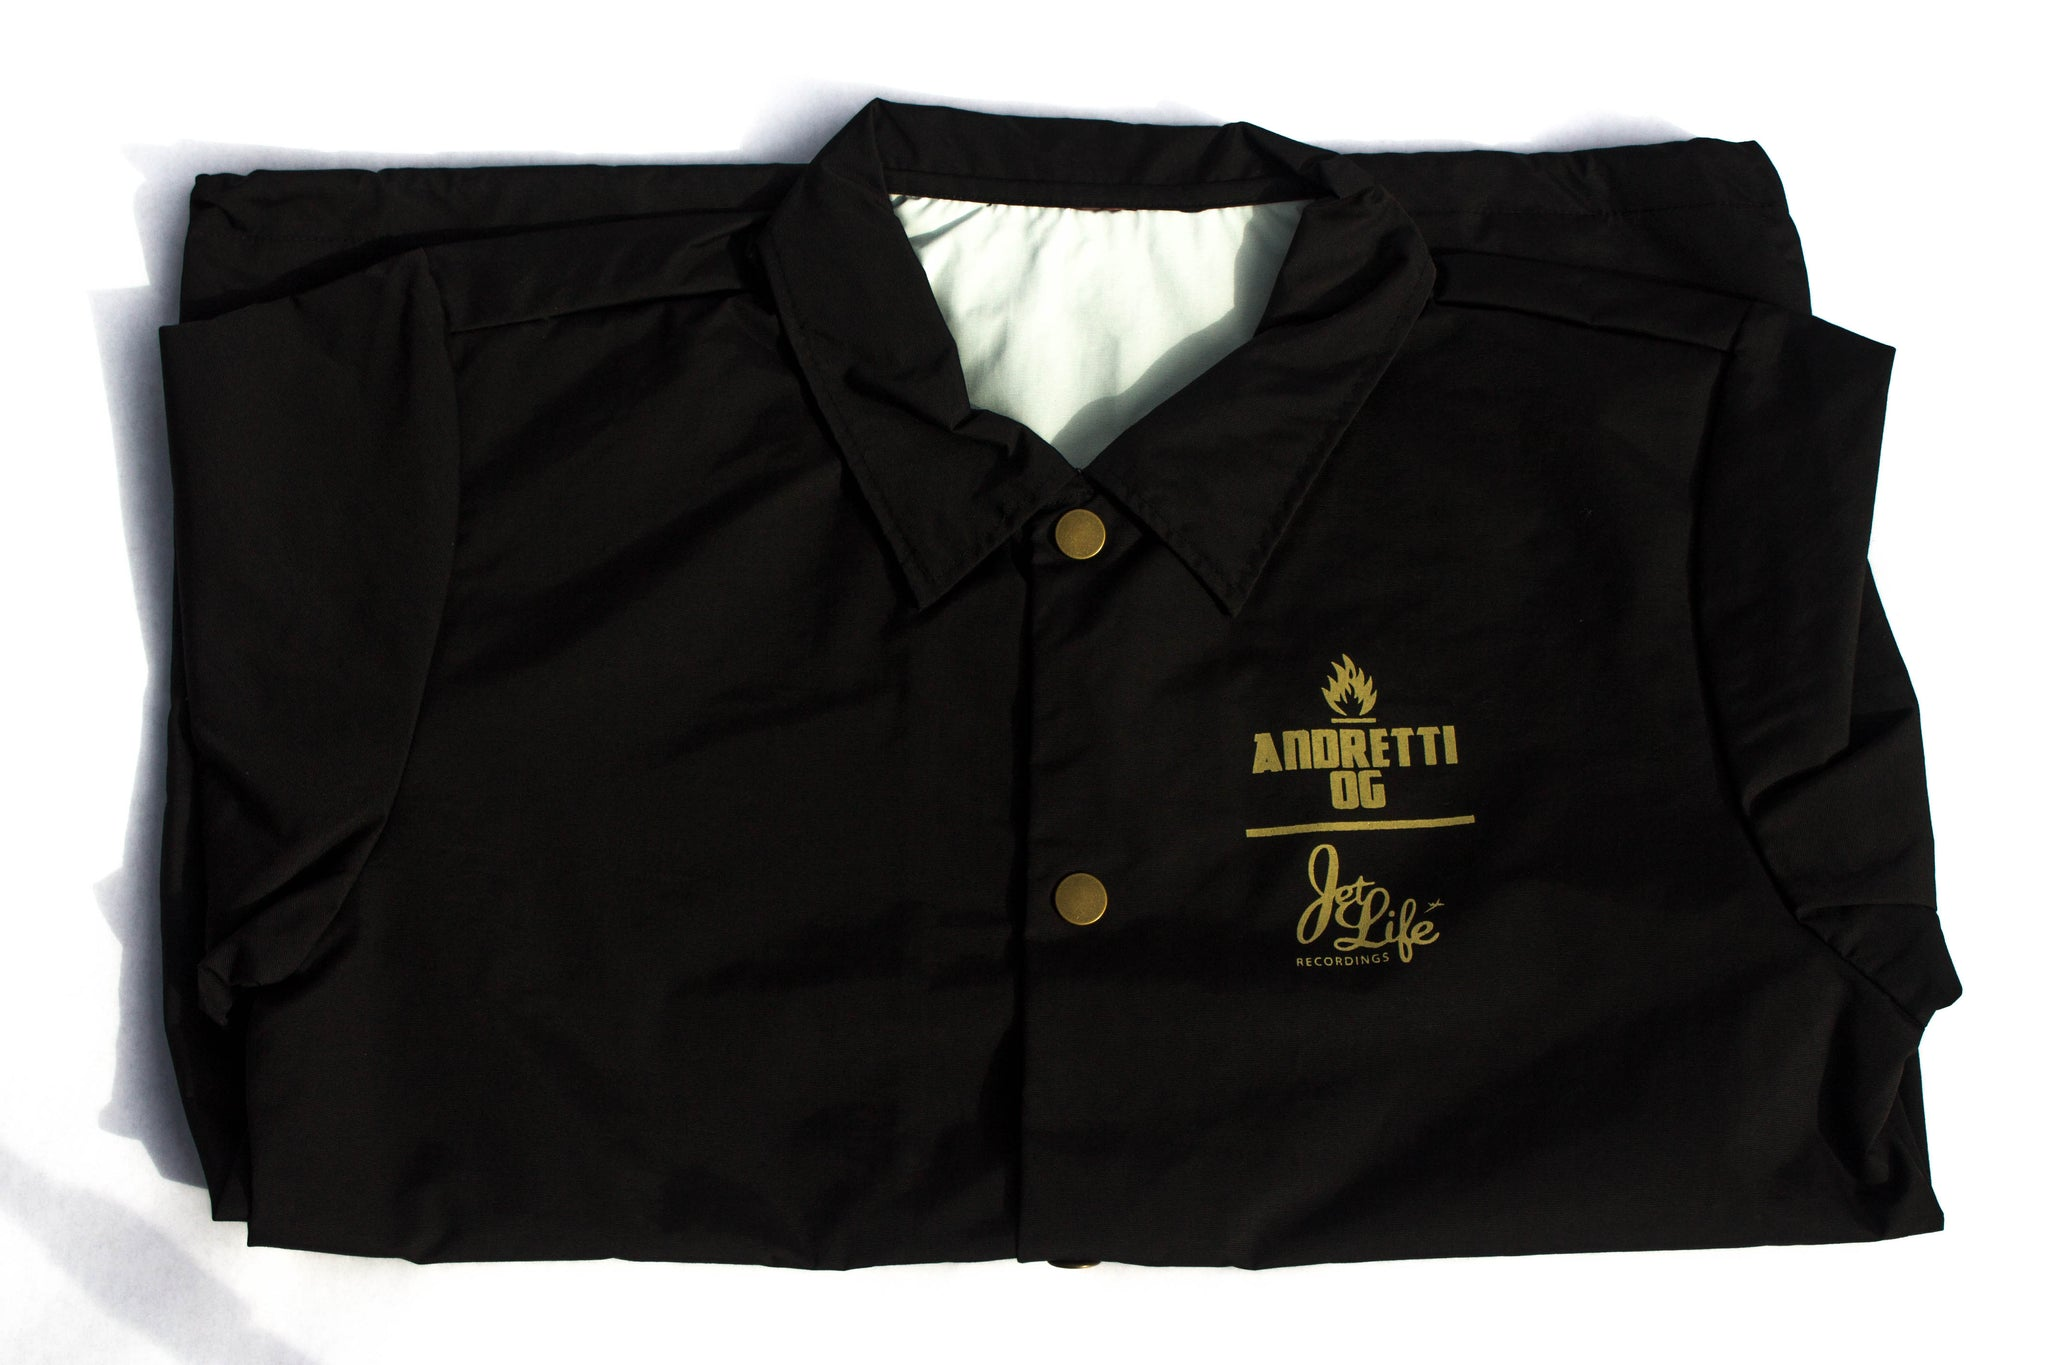 Andretti OG Flame Windbreaker